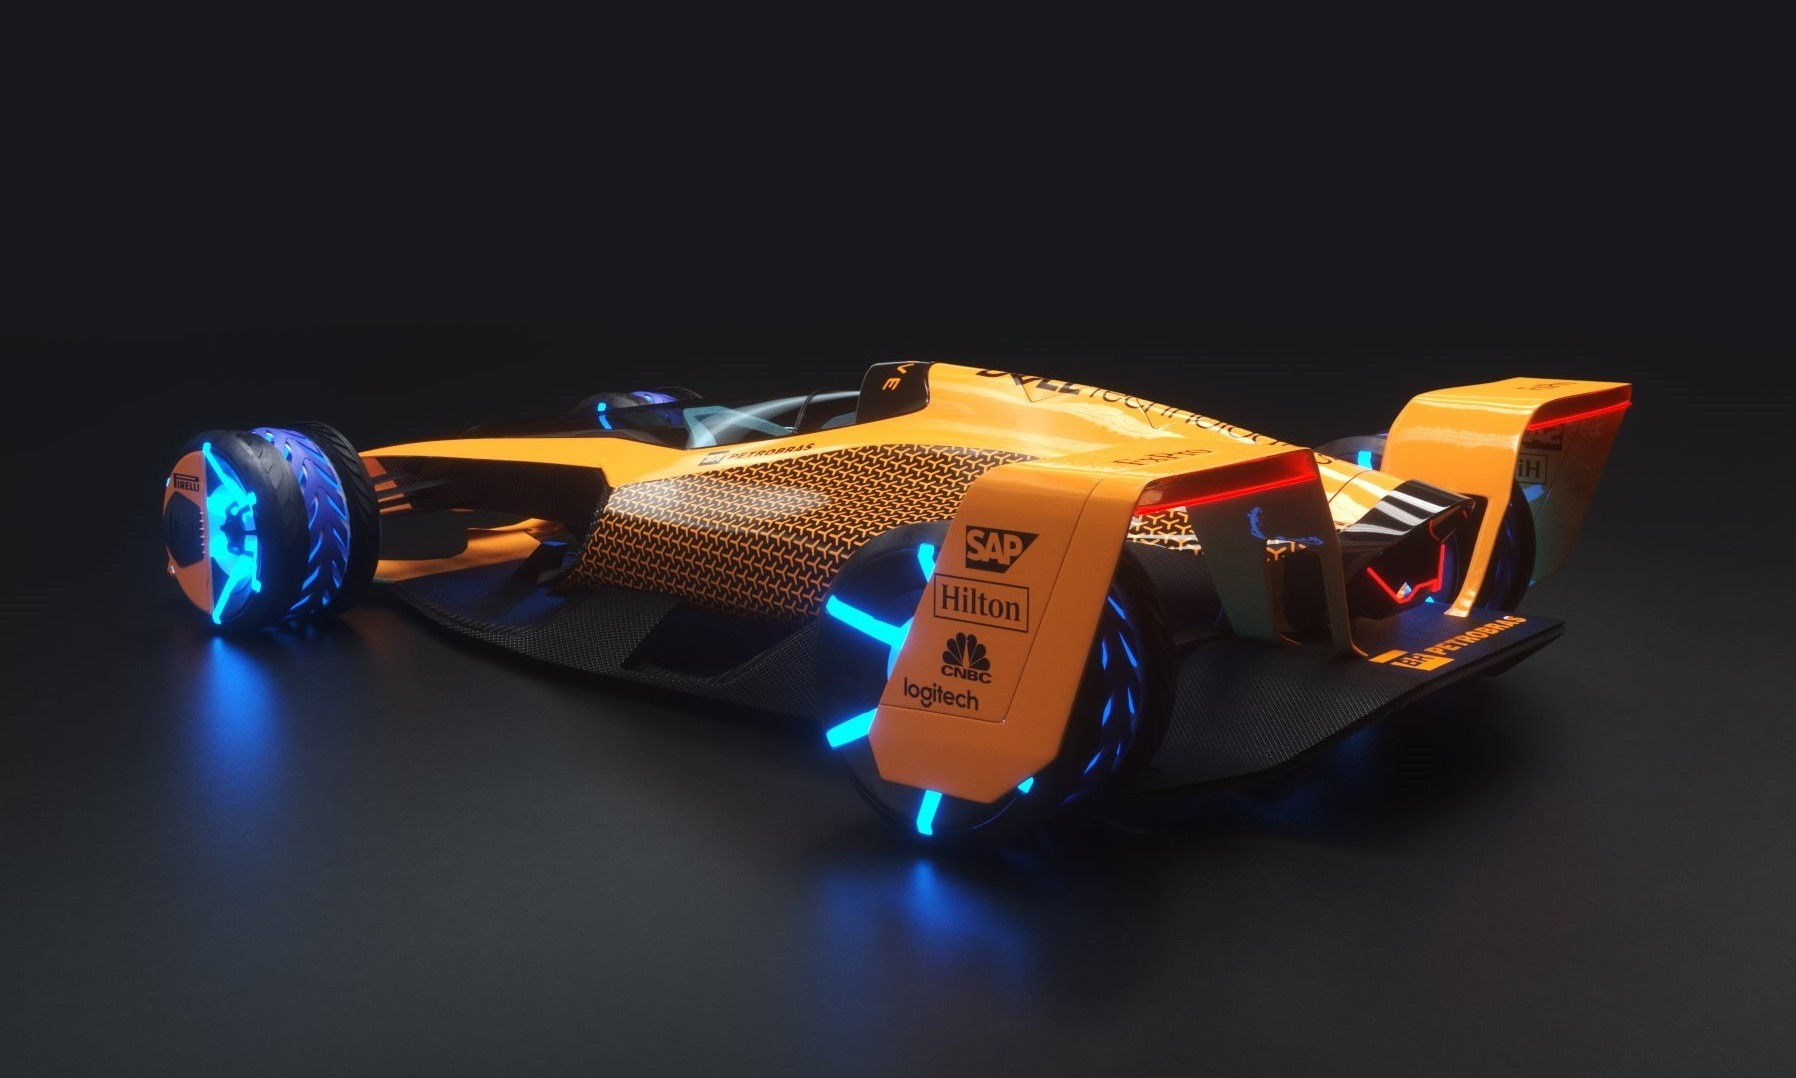 McLaren Future Grand Prix racecar rear